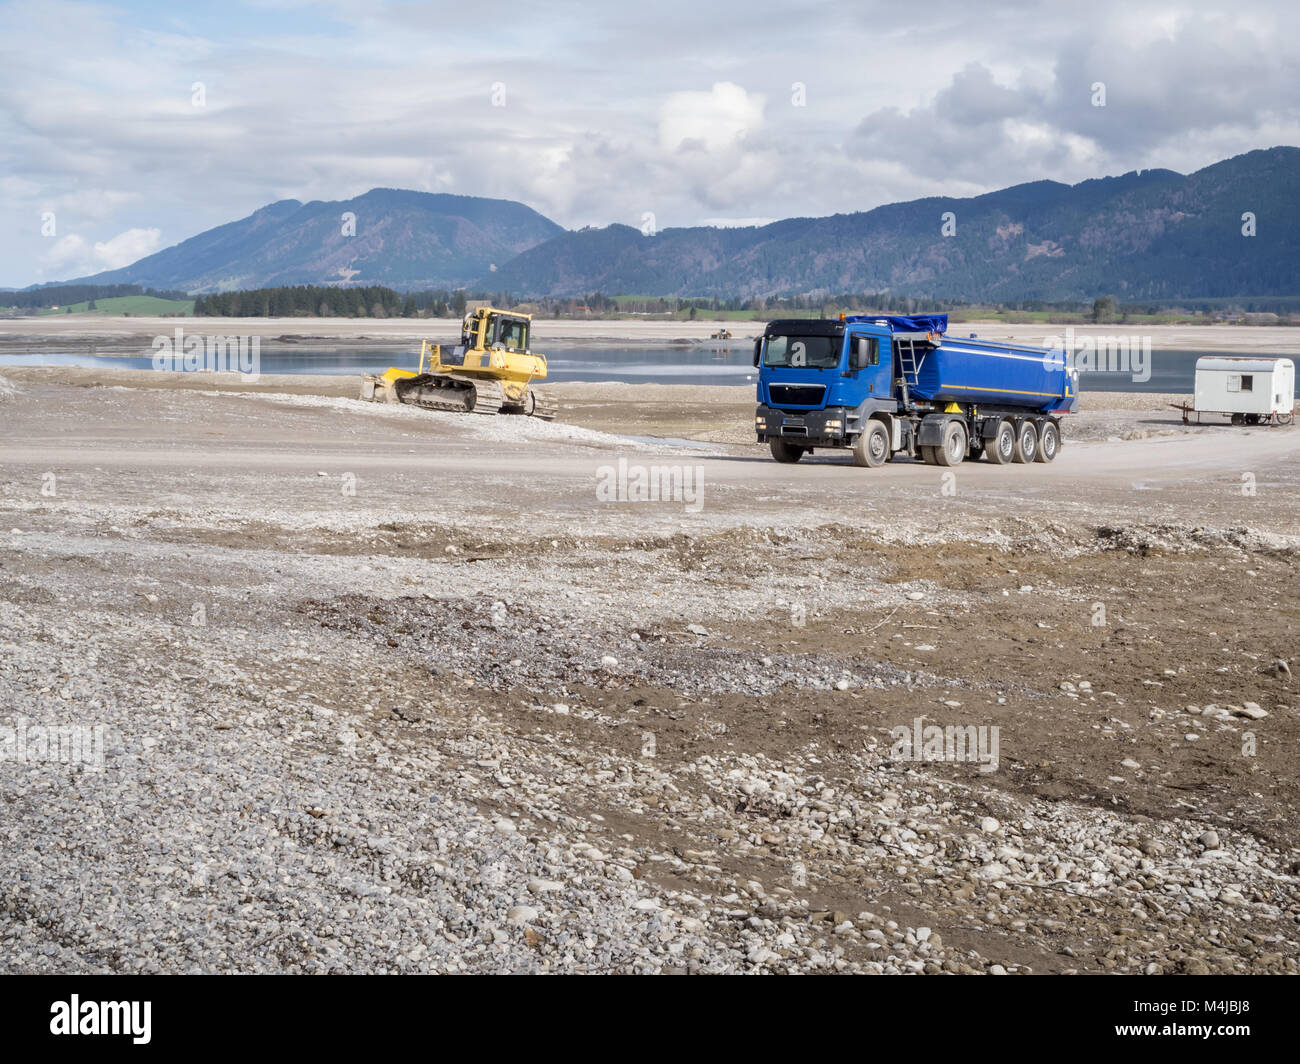 Construction work in the Forggensee_blue - Stock Image